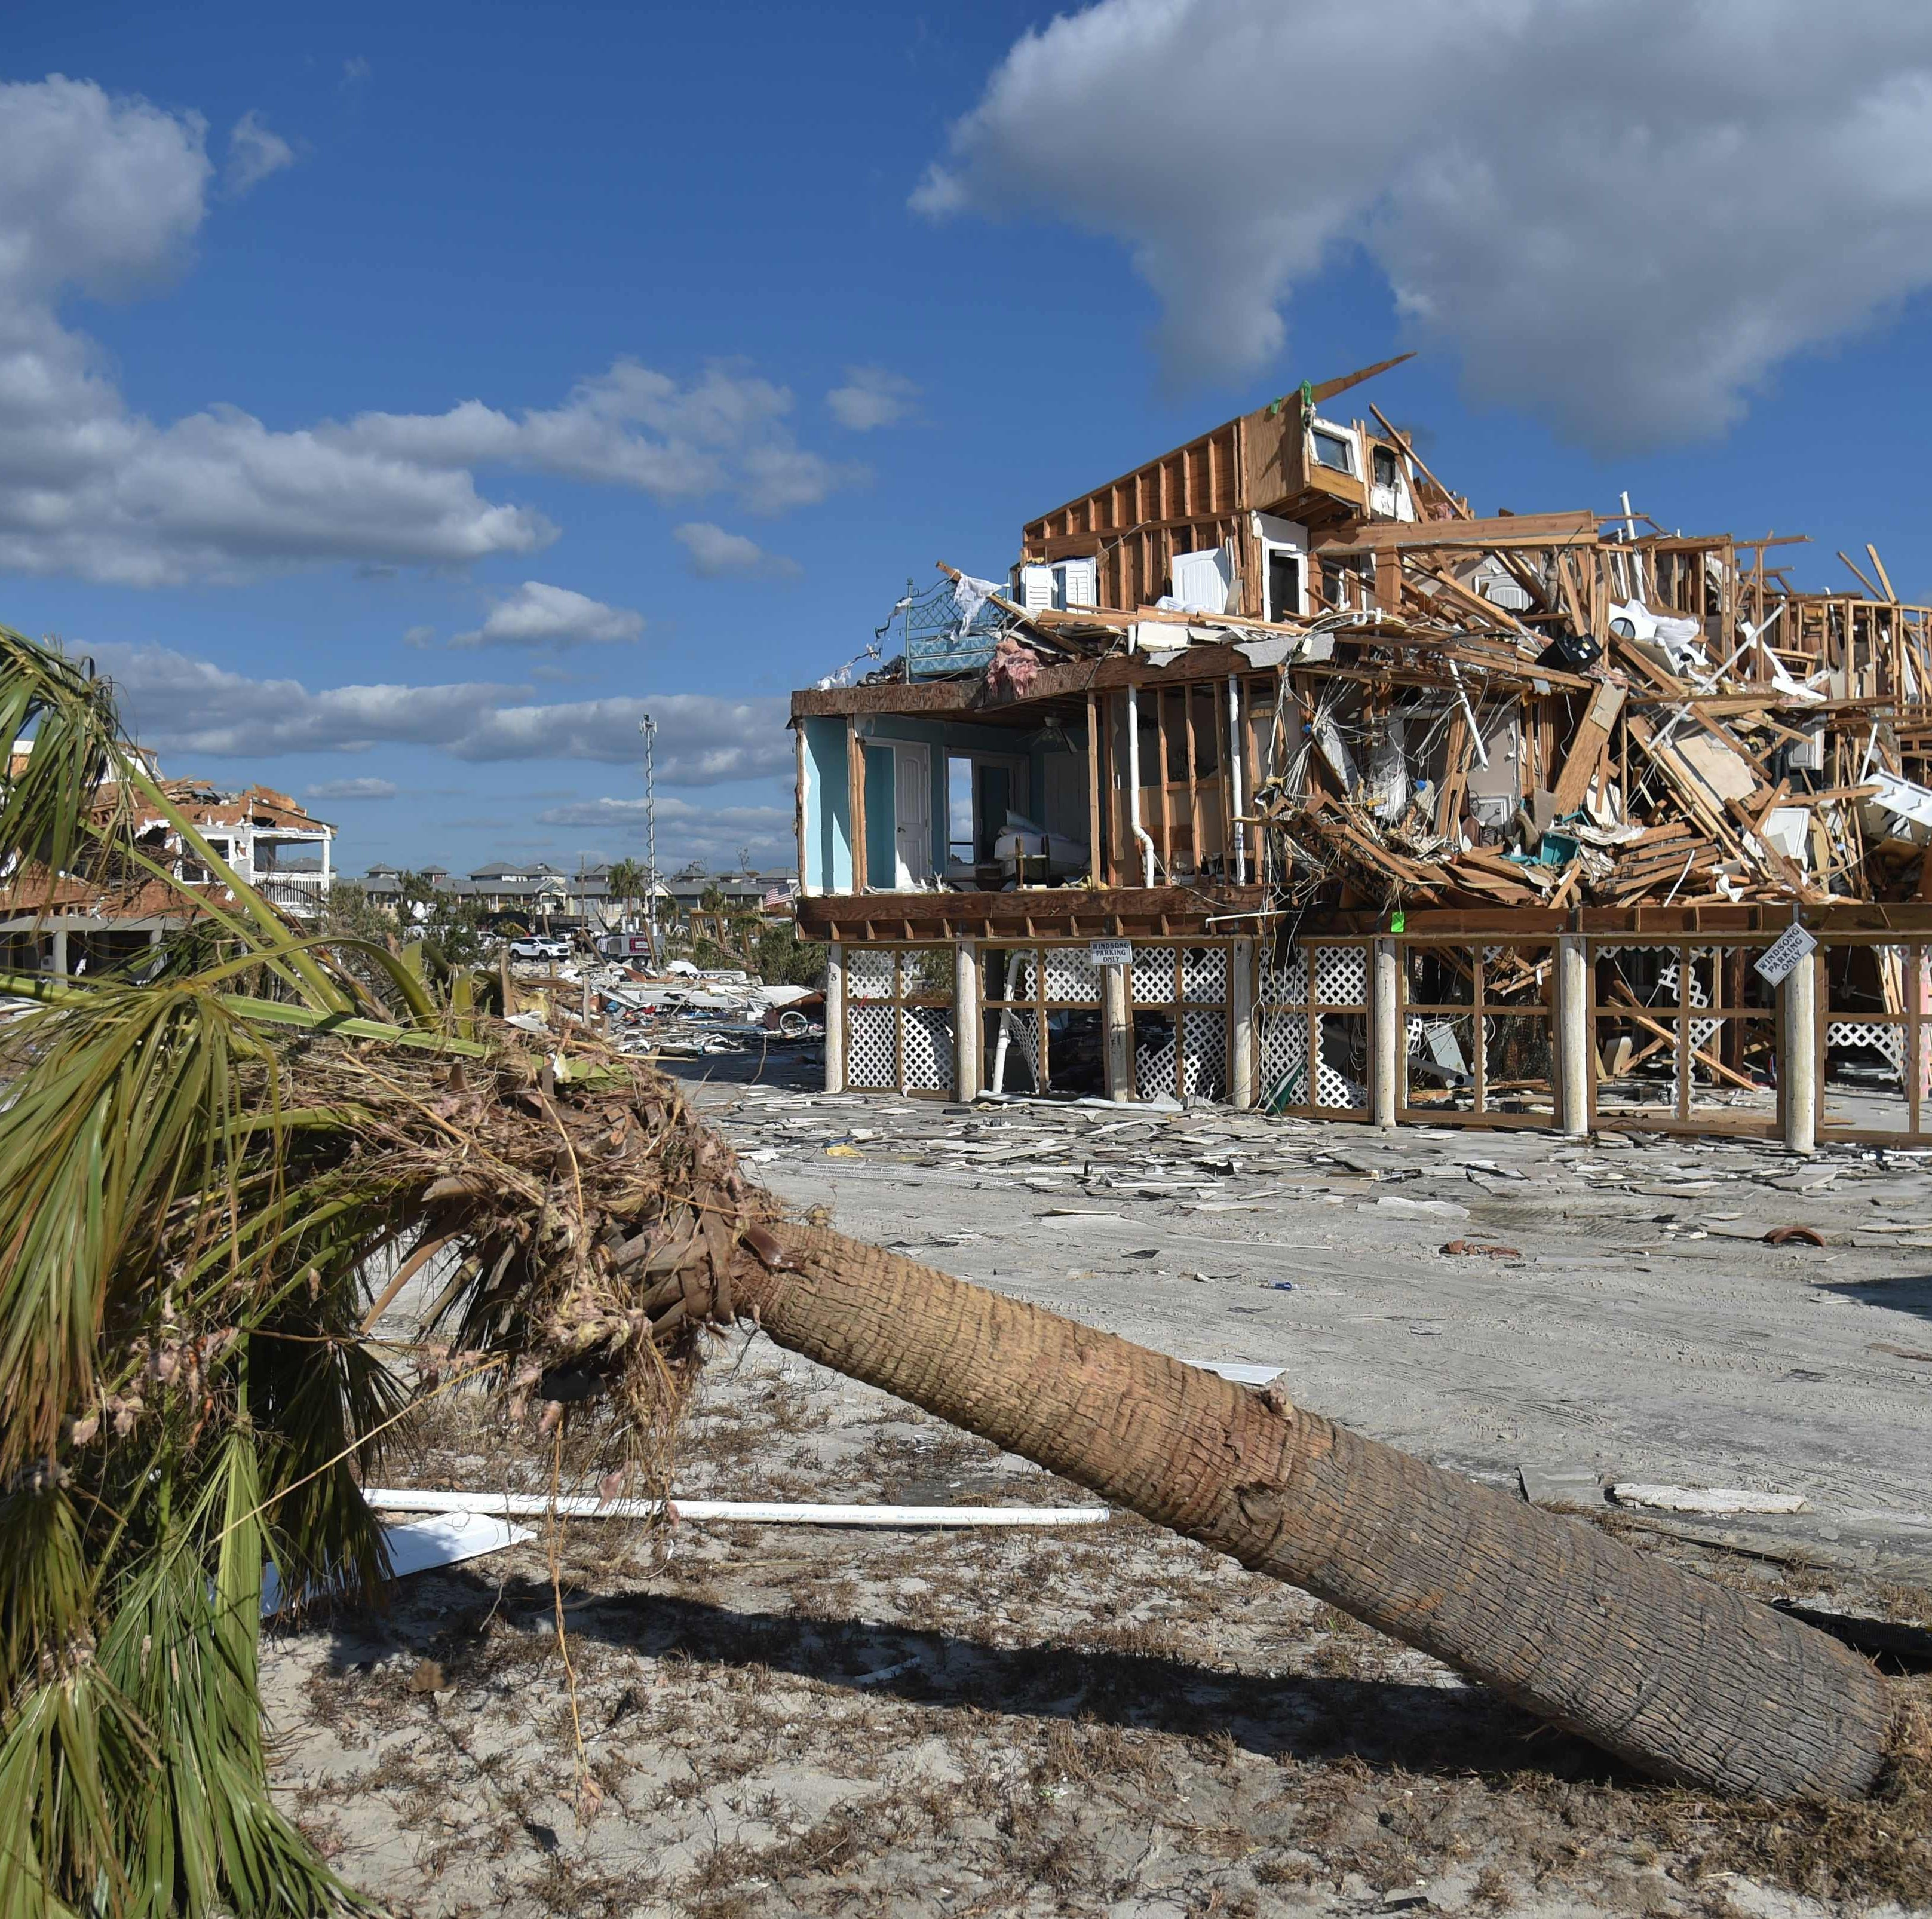 View of the damaged caused by Hurricane Michael in Mexico Beach, Fla. on Oct. 13, 2018, three days after Hurricane Michael hit the area. Four days after Hurricane Michael's devastating strike, search teams in Florida pressed their hunt for victims into hard-to-reach areas Saturday, as the death toll rose to 17 and officials scrambled to deliver aid to those who lost everything.The mammoth storm, which made landfall as a Category 4 storm on Wednesday, claimed lives in four states, but Florida suffered the worst damage by far.